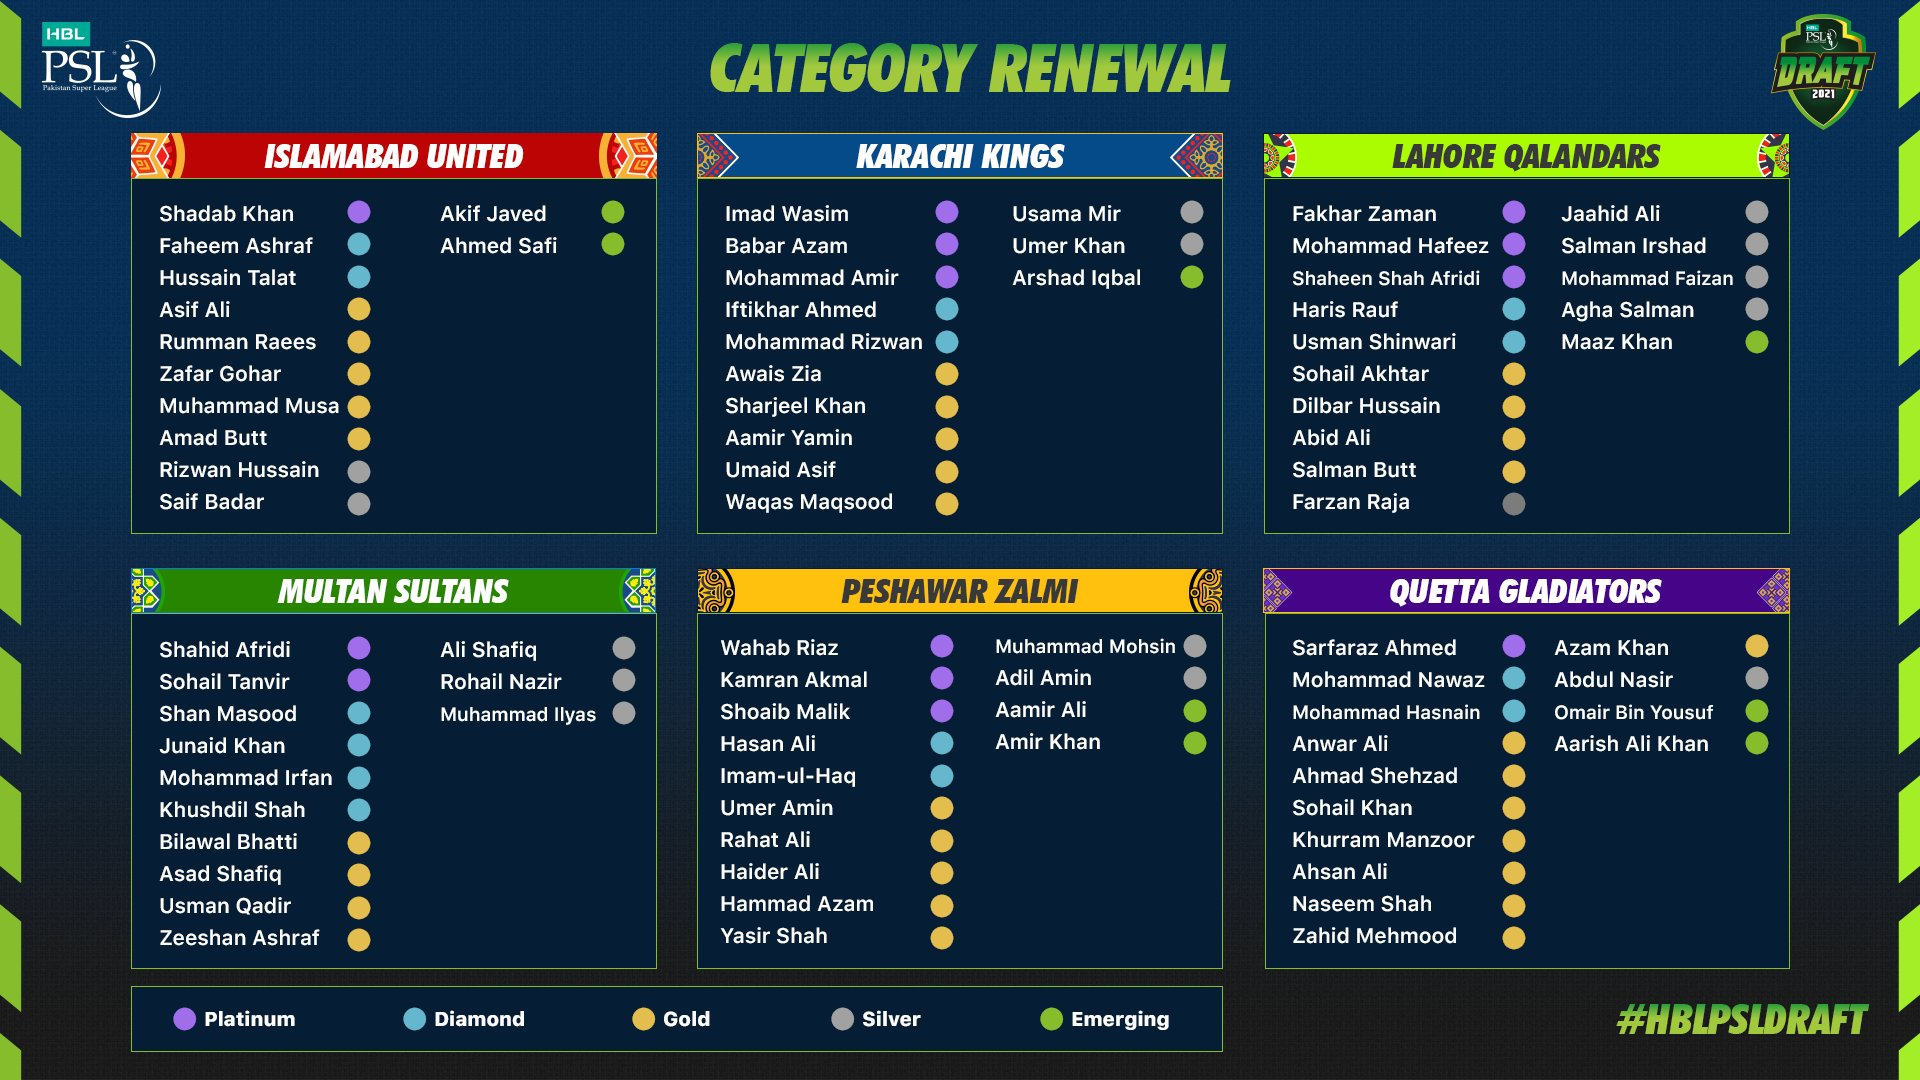 final/renewal category of players HBL PSL 6th Edition 2021